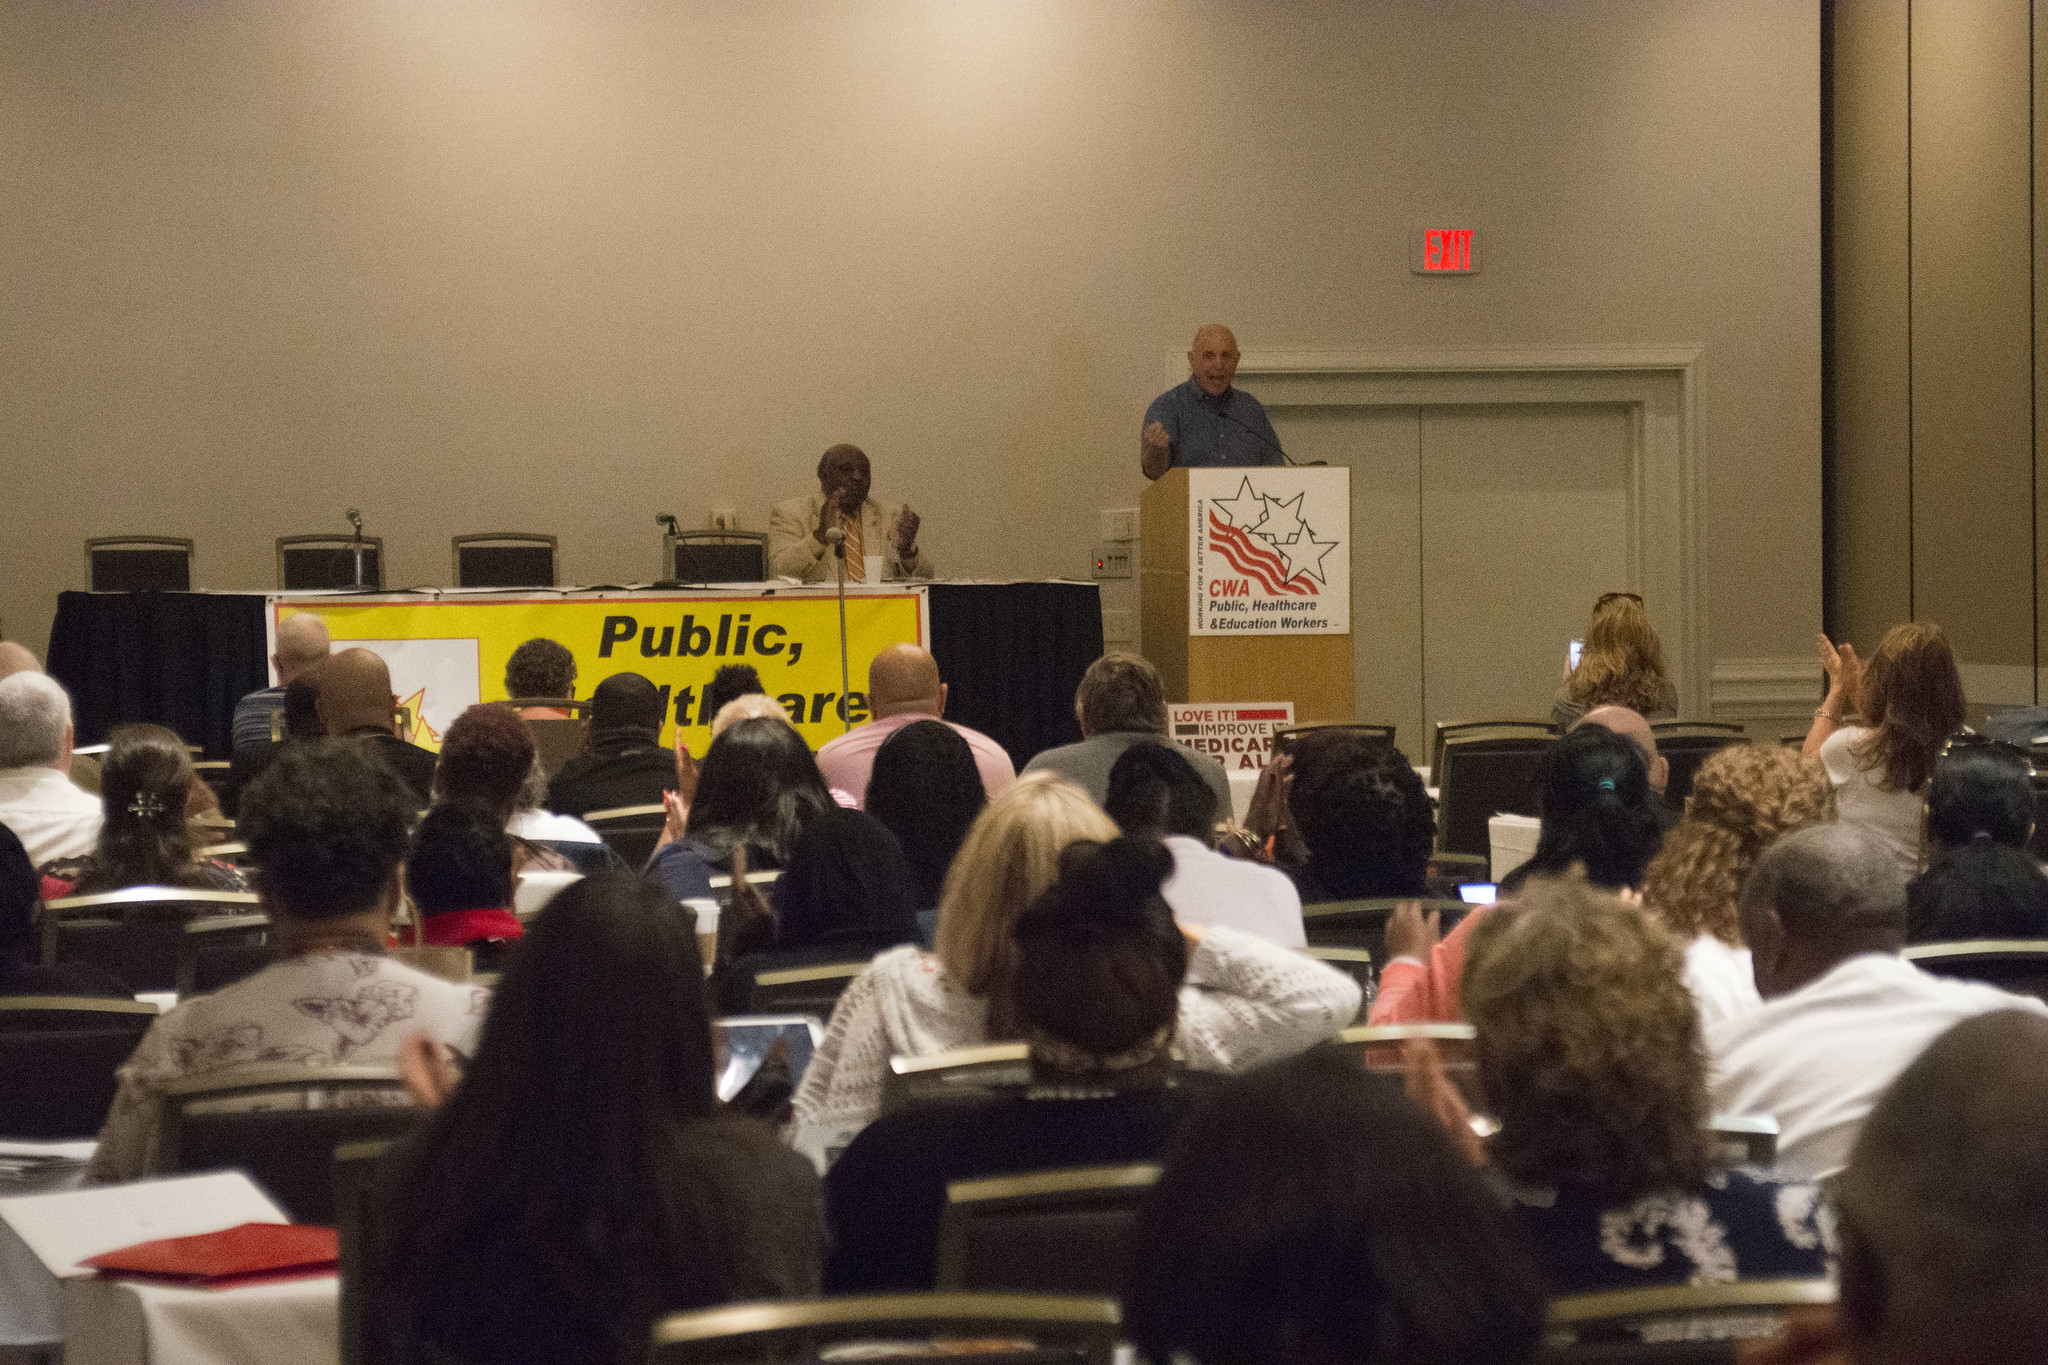 Larry Cohen at the 2017 Public, Healthcare, and Education Workers Conference